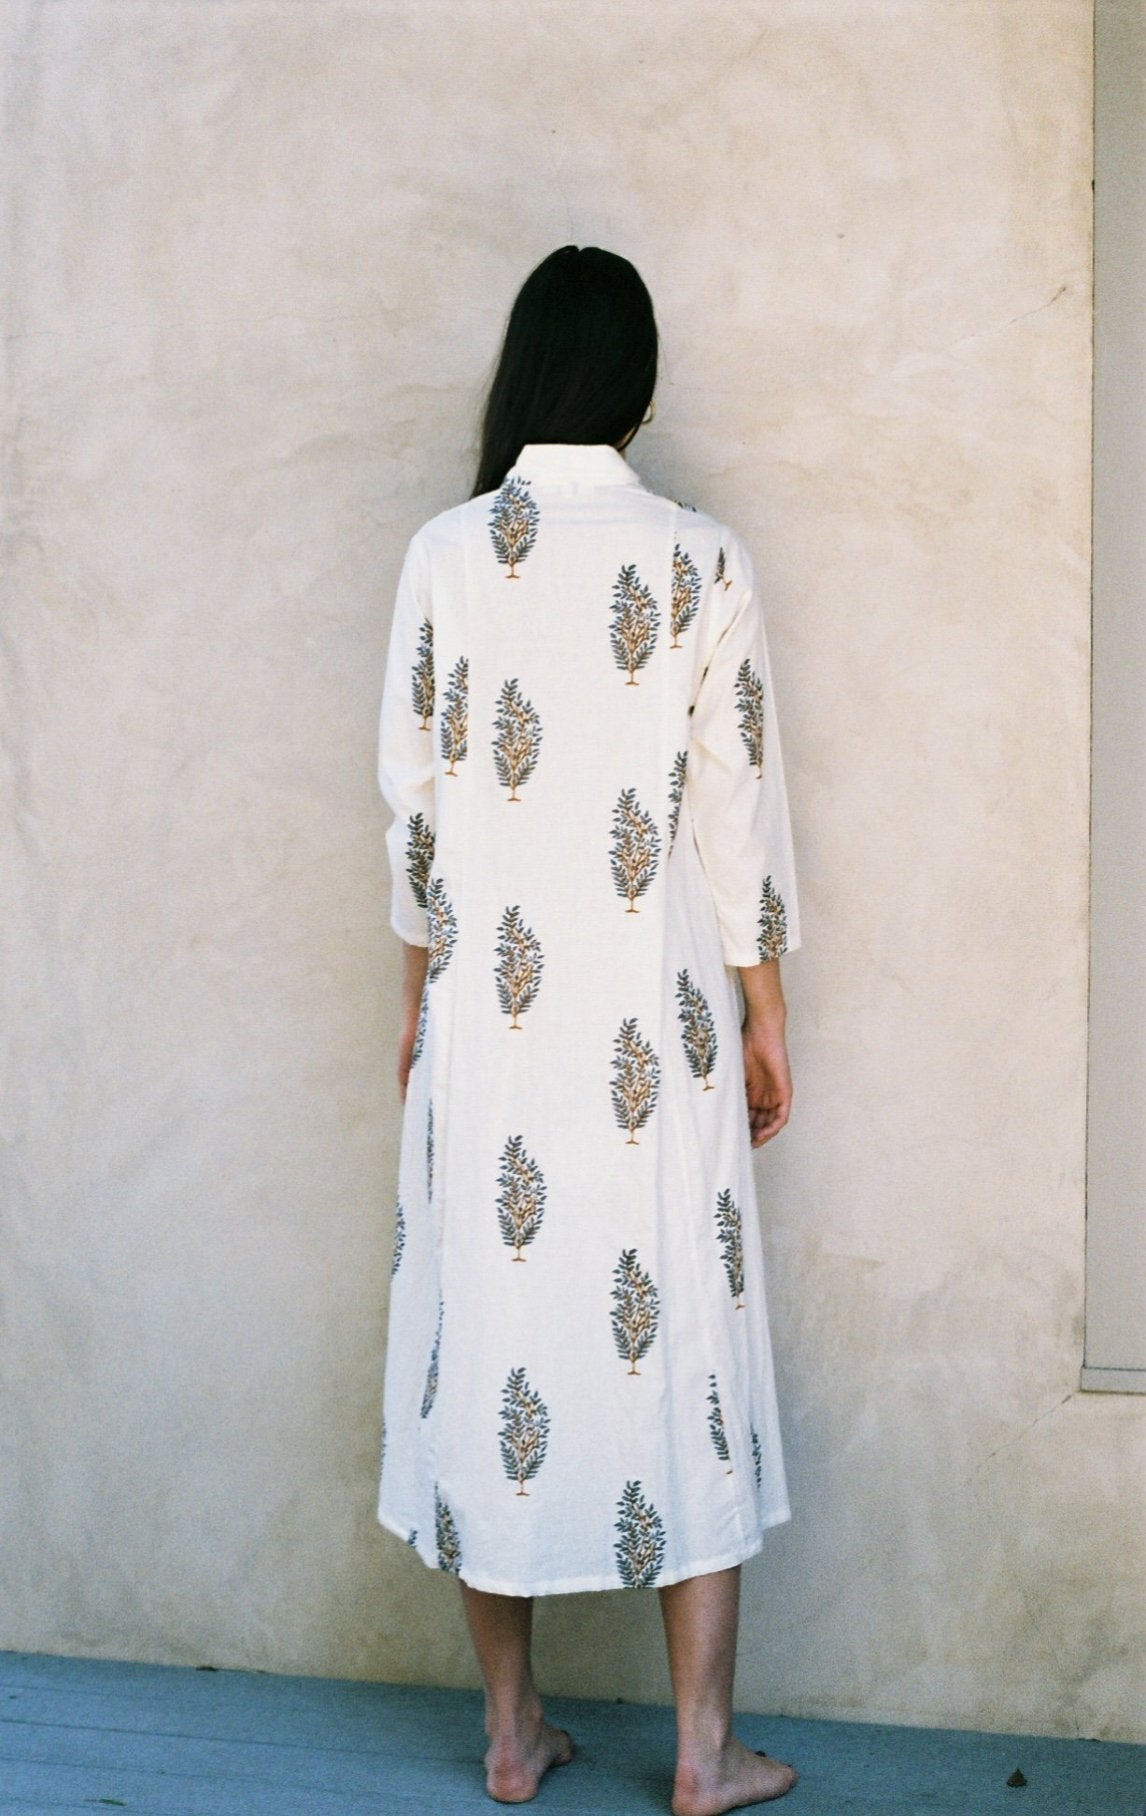 Mes Filles - House of the Sadie Dress. The new Life print, 100% Indian cotton dress.